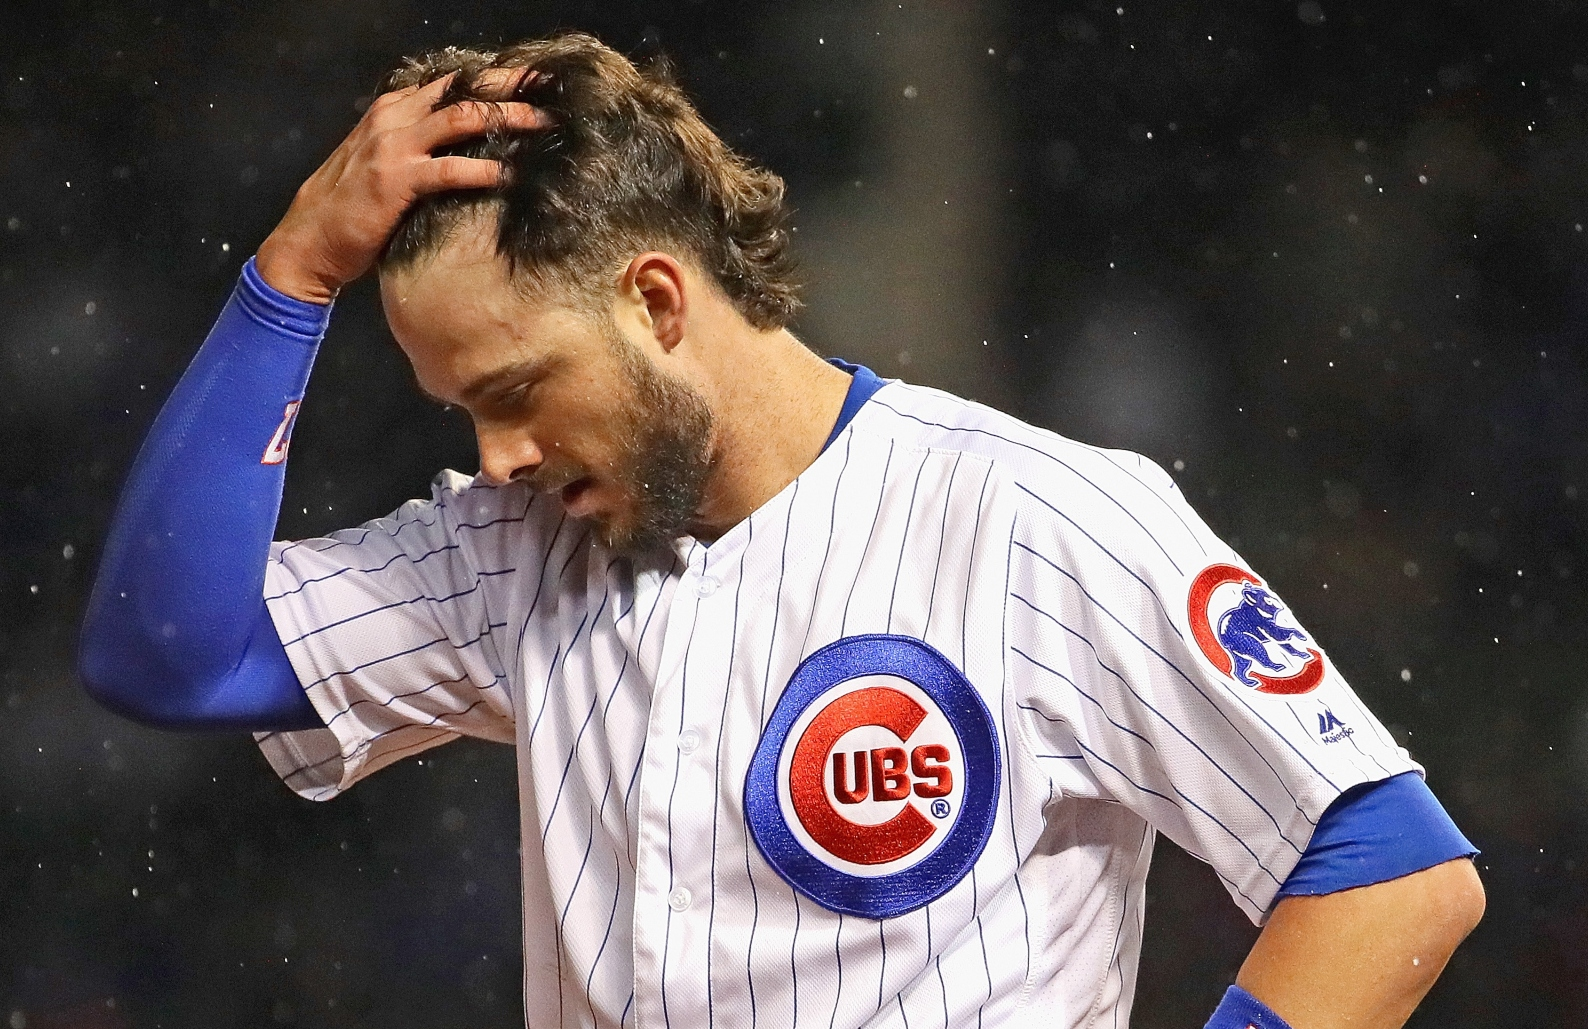 Lost Opportunities Haunt Cubs As Season Ends